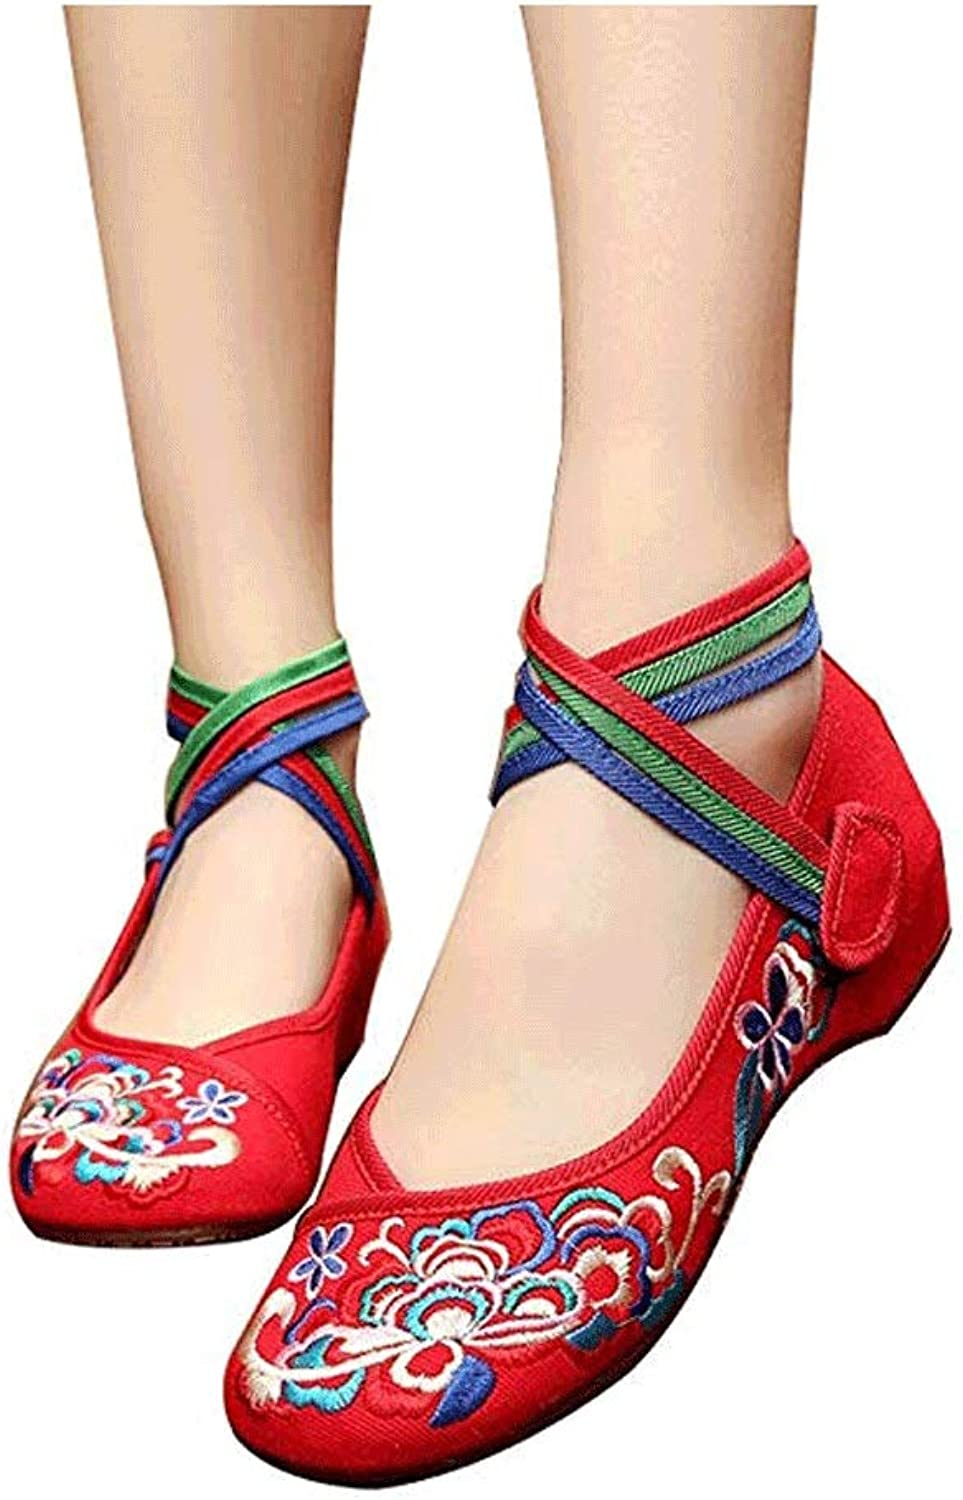 Lace-up Flower Embroidered Cloth shoes, Wedding shoes, National Wind, Beef Tendon, Square Dance shoes